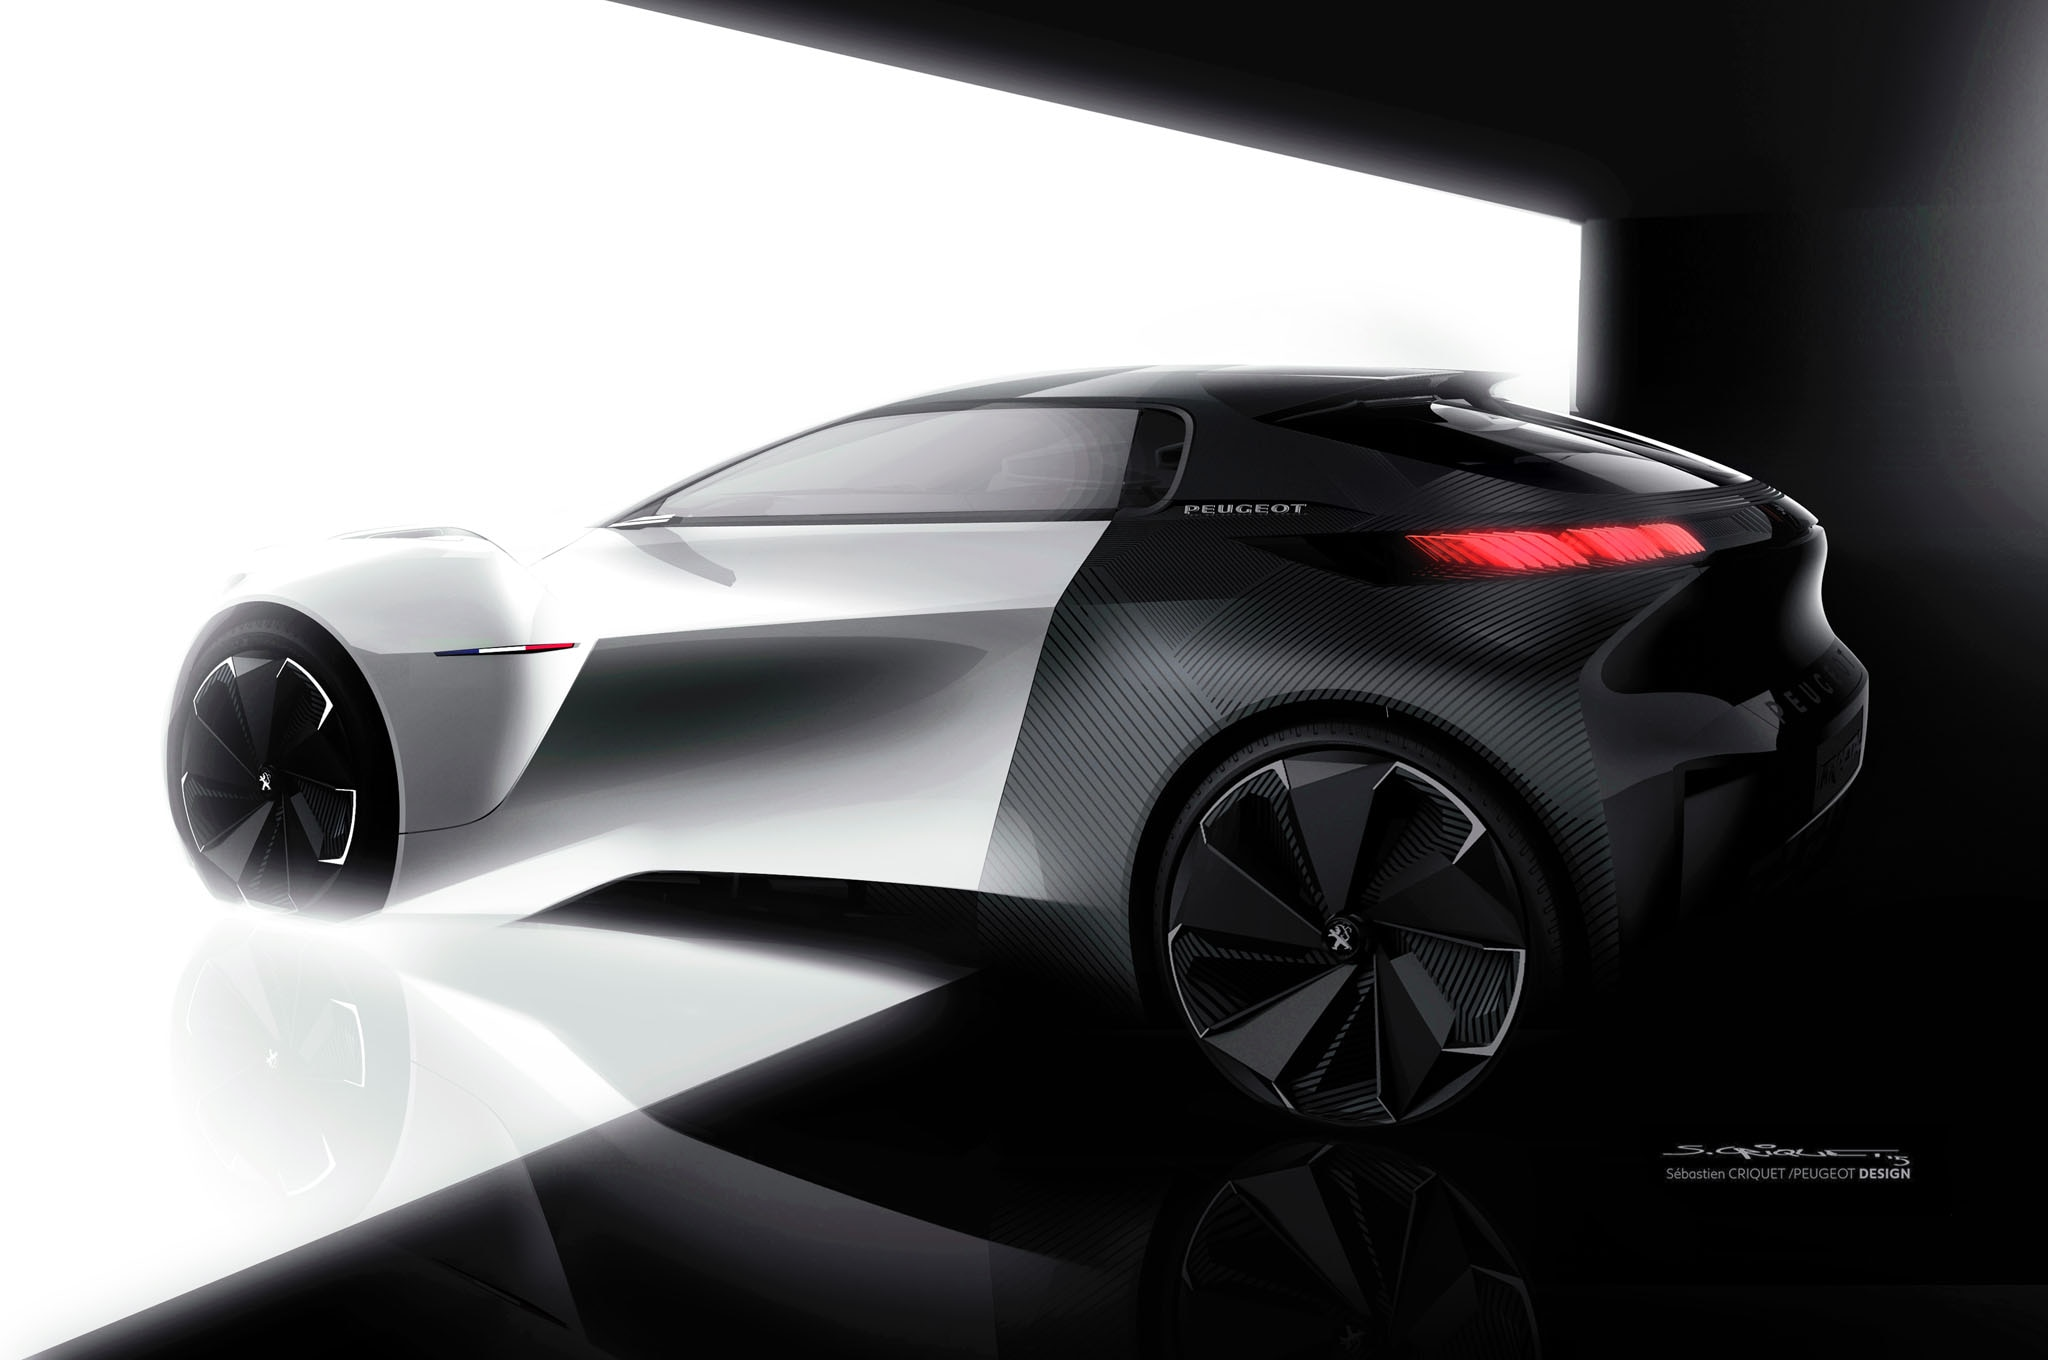 peugeot fractal concept shows off 3d printing electric powertrain. Black Bedroom Furniture Sets. Home Design Ideas